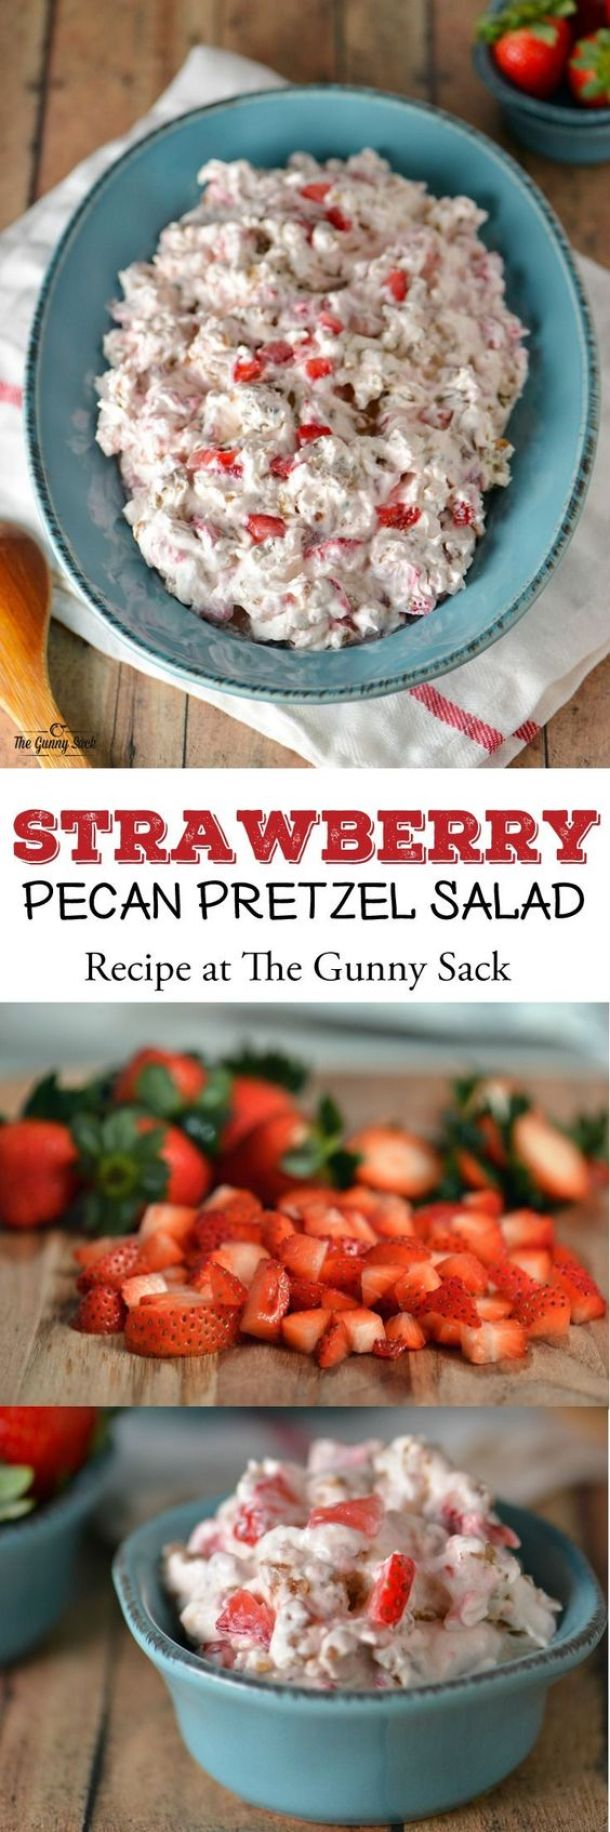 Strawberry Pecan Pretzel Salad Recipe | The Gunny Sack - The BEST Classic, Improved and Traditional Thanksgiving Dinner Menu Favorites Recipes - Main Dishes, Side Dishes, Appetizers, Salads, Yummy Desserts and more!